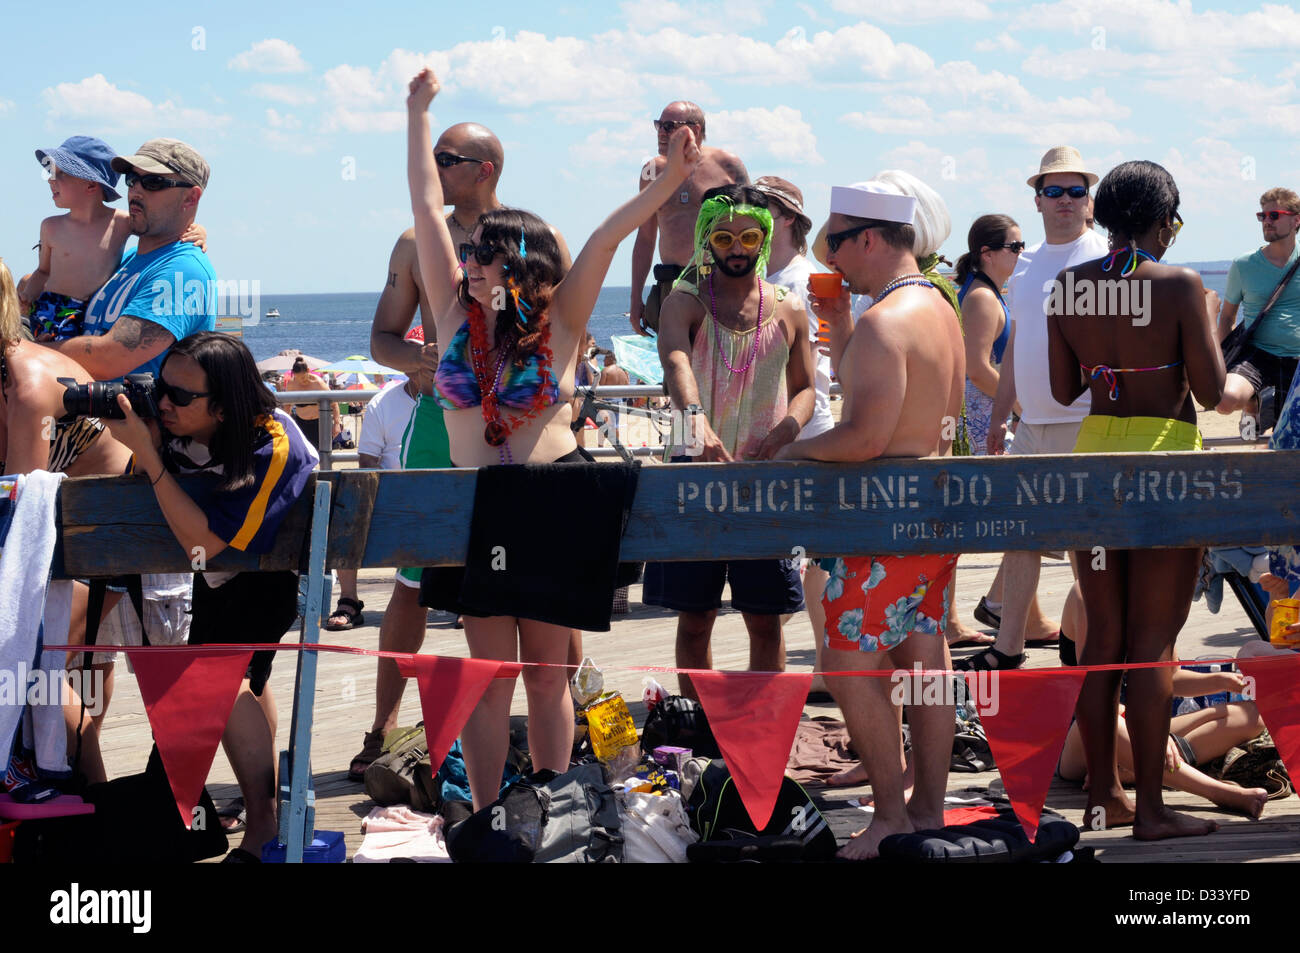 Revellers enjoy the sights and the sunshine at the annual Coney Island Mermaid Parade, 2012. Stock Photo